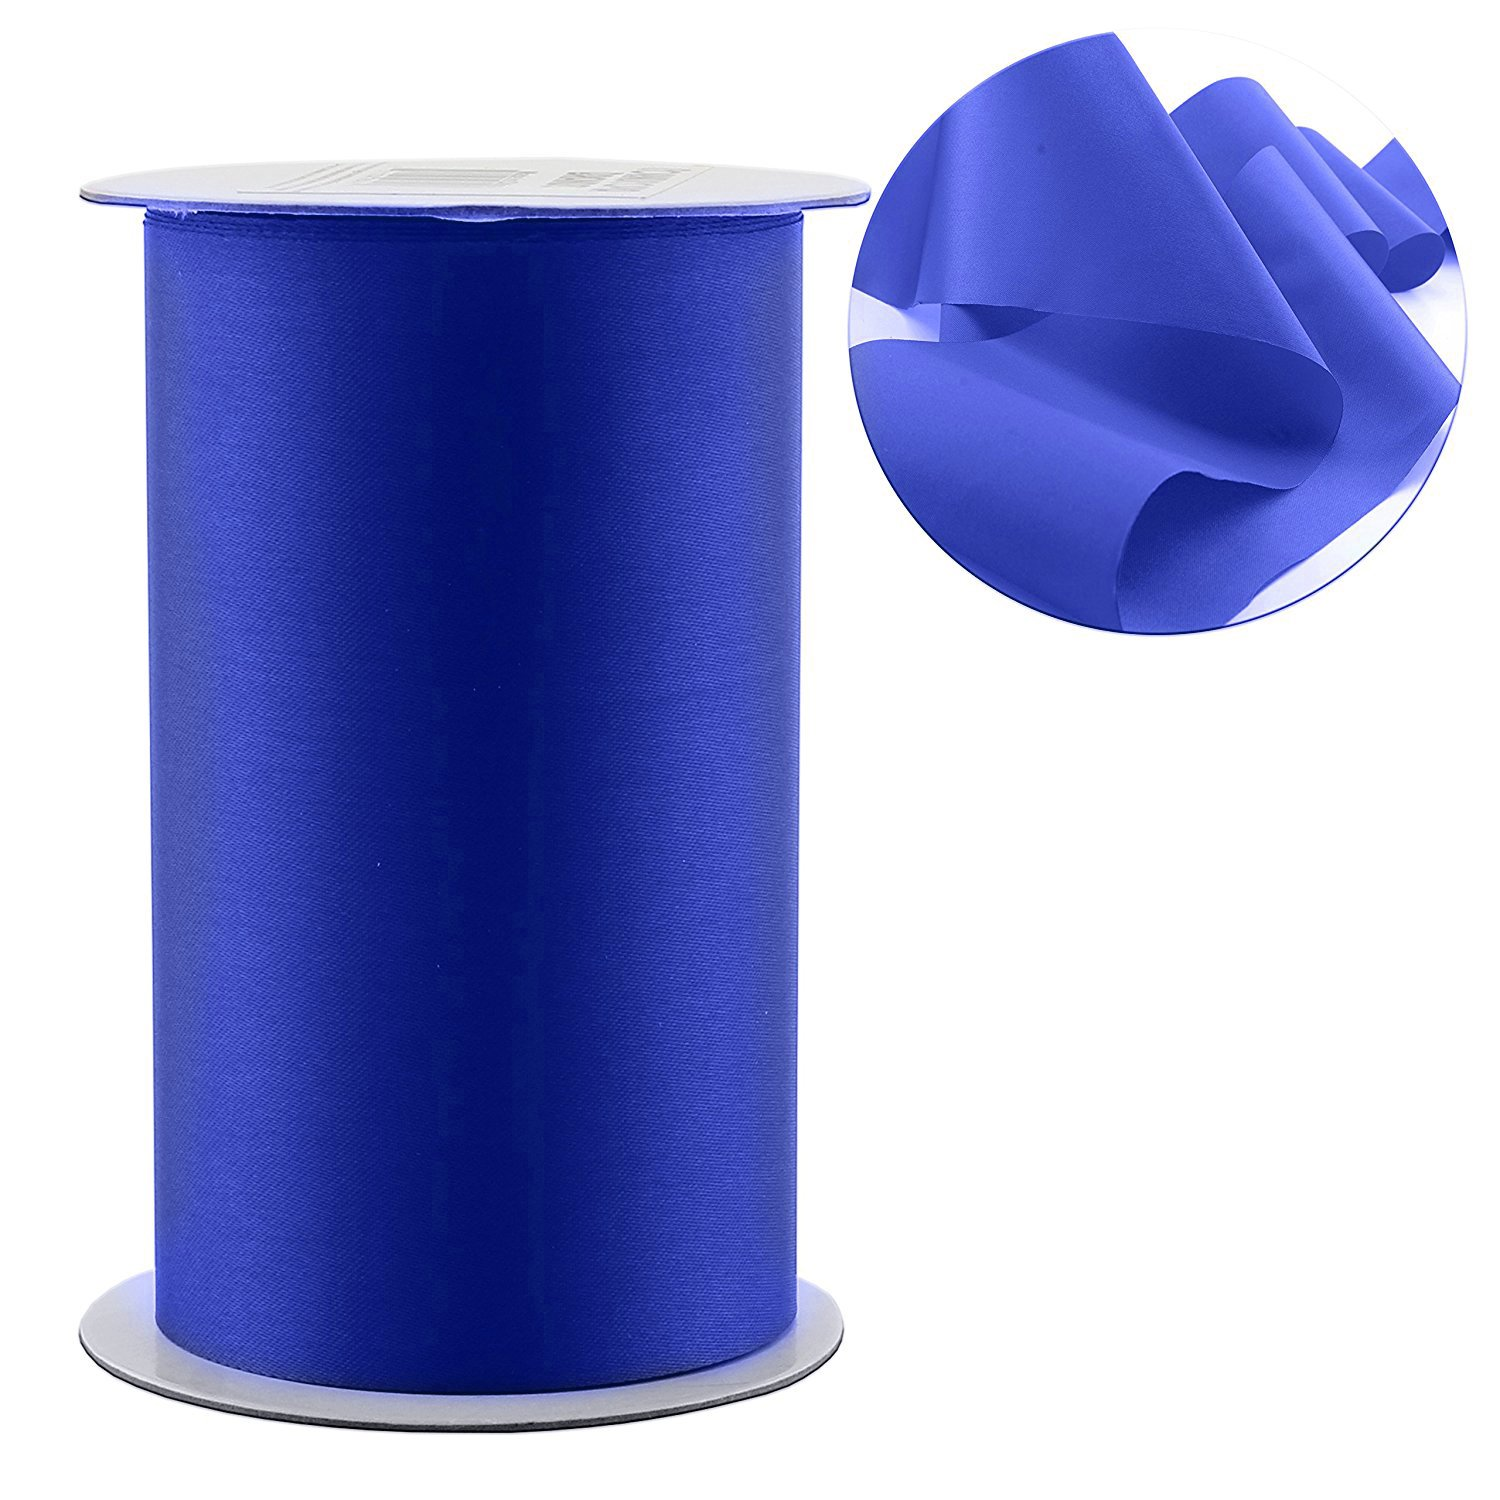 """4"""" Wide Blue Satin Ribbon for Grand Opening Ceremonies/Ribbon Cutting, Weddings, Chair Sashes, Crafts (10-Yard Spool/30 Feet), Royal Blue Solid Color Cornucopia Brands"""